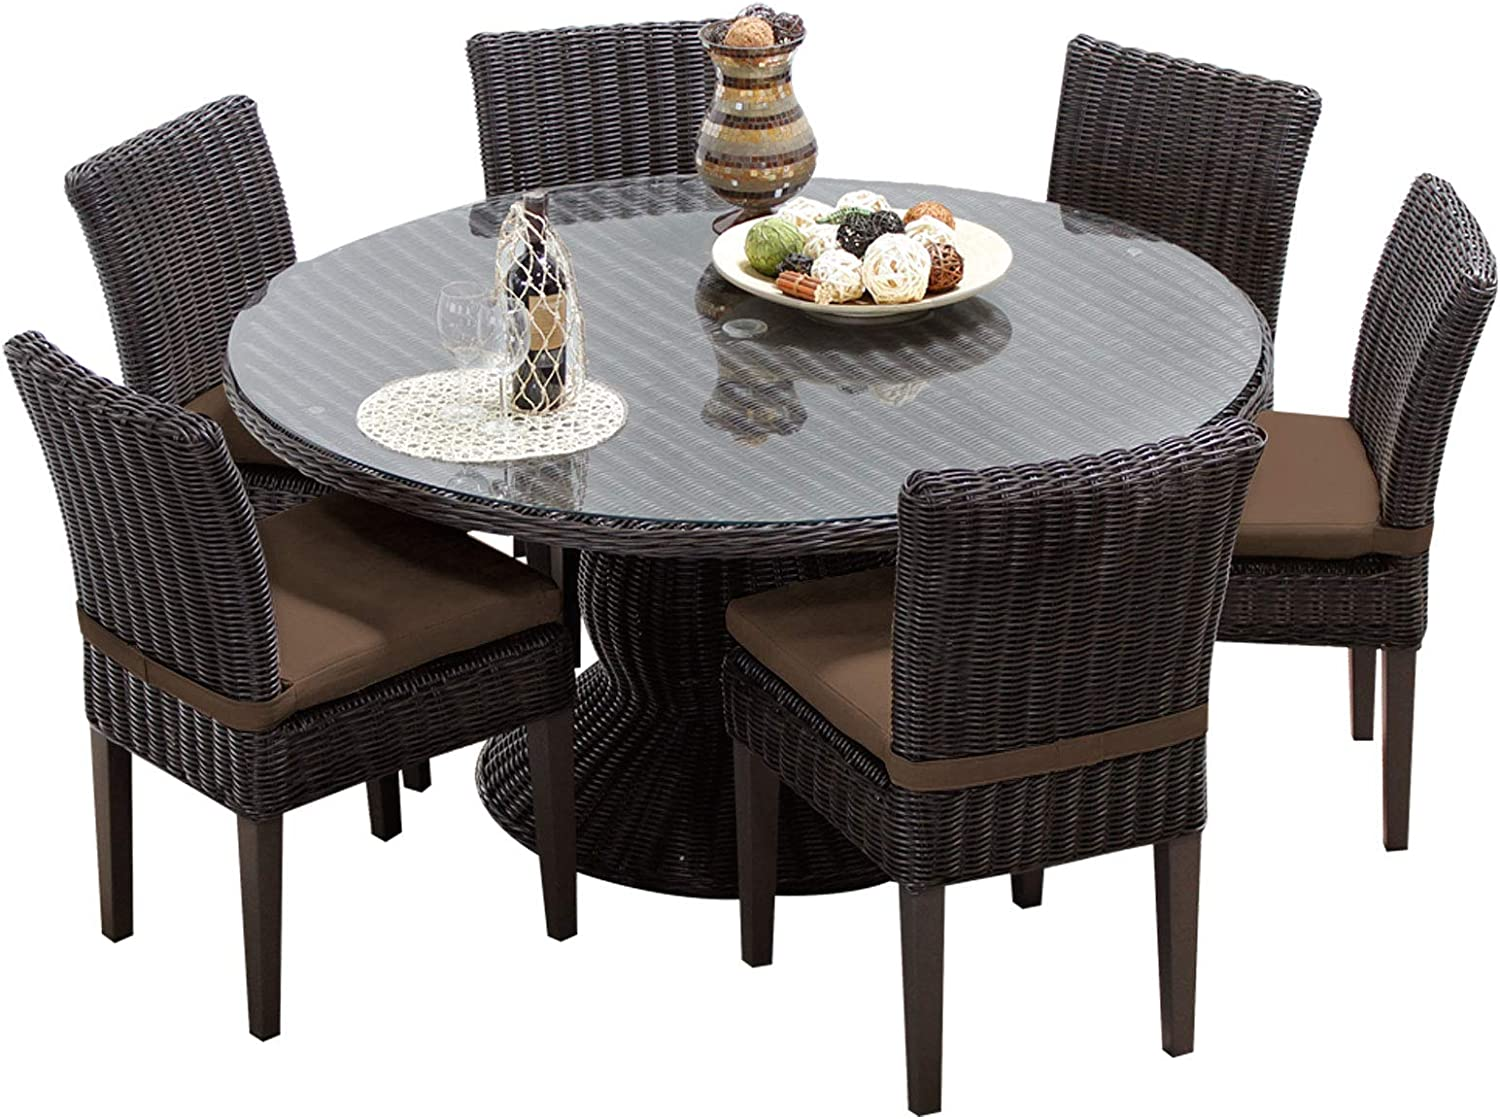 Amazon Com Tk Classics Venice 60 Inch Outdoor Patio Dining Table With 6 Armless Chairs Cocoa Furniture Decor